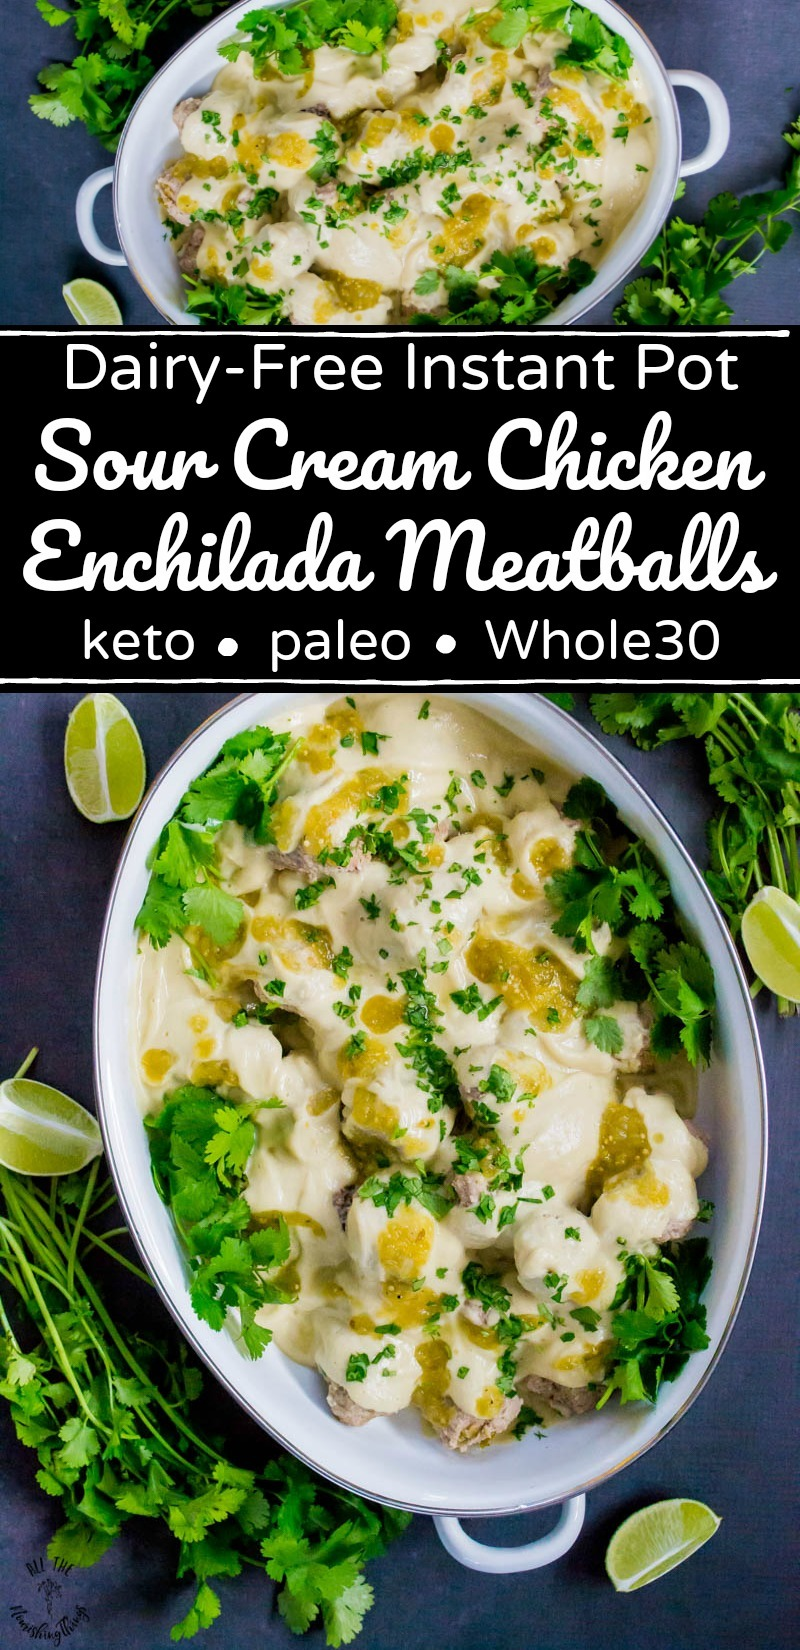 collage of 2 images of instant pot dairy-free sour cream chicken enchilada meatballs with text overlay between the images